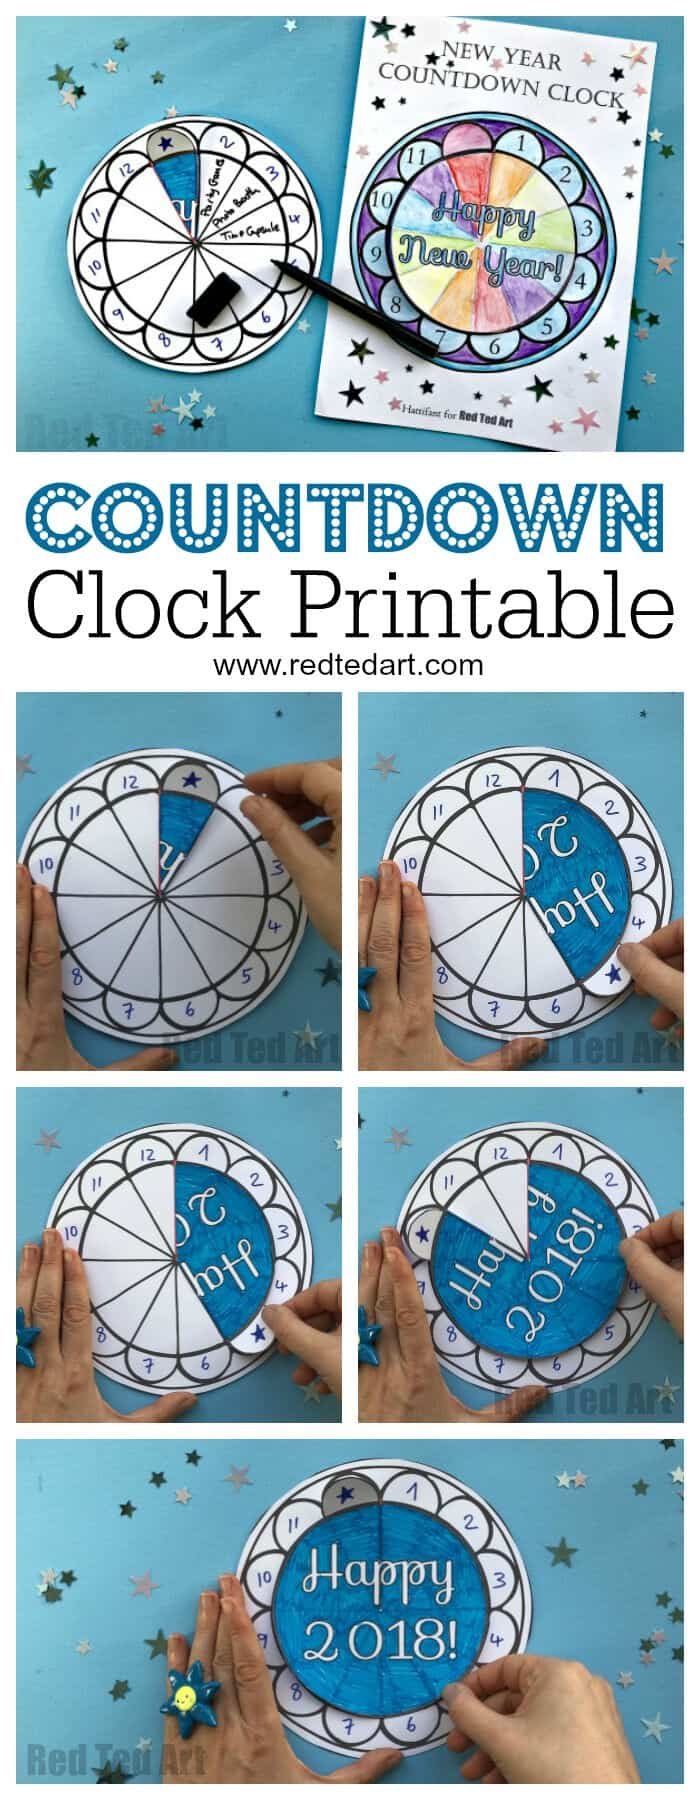 Countdown Clock Printable by Red Ted Art